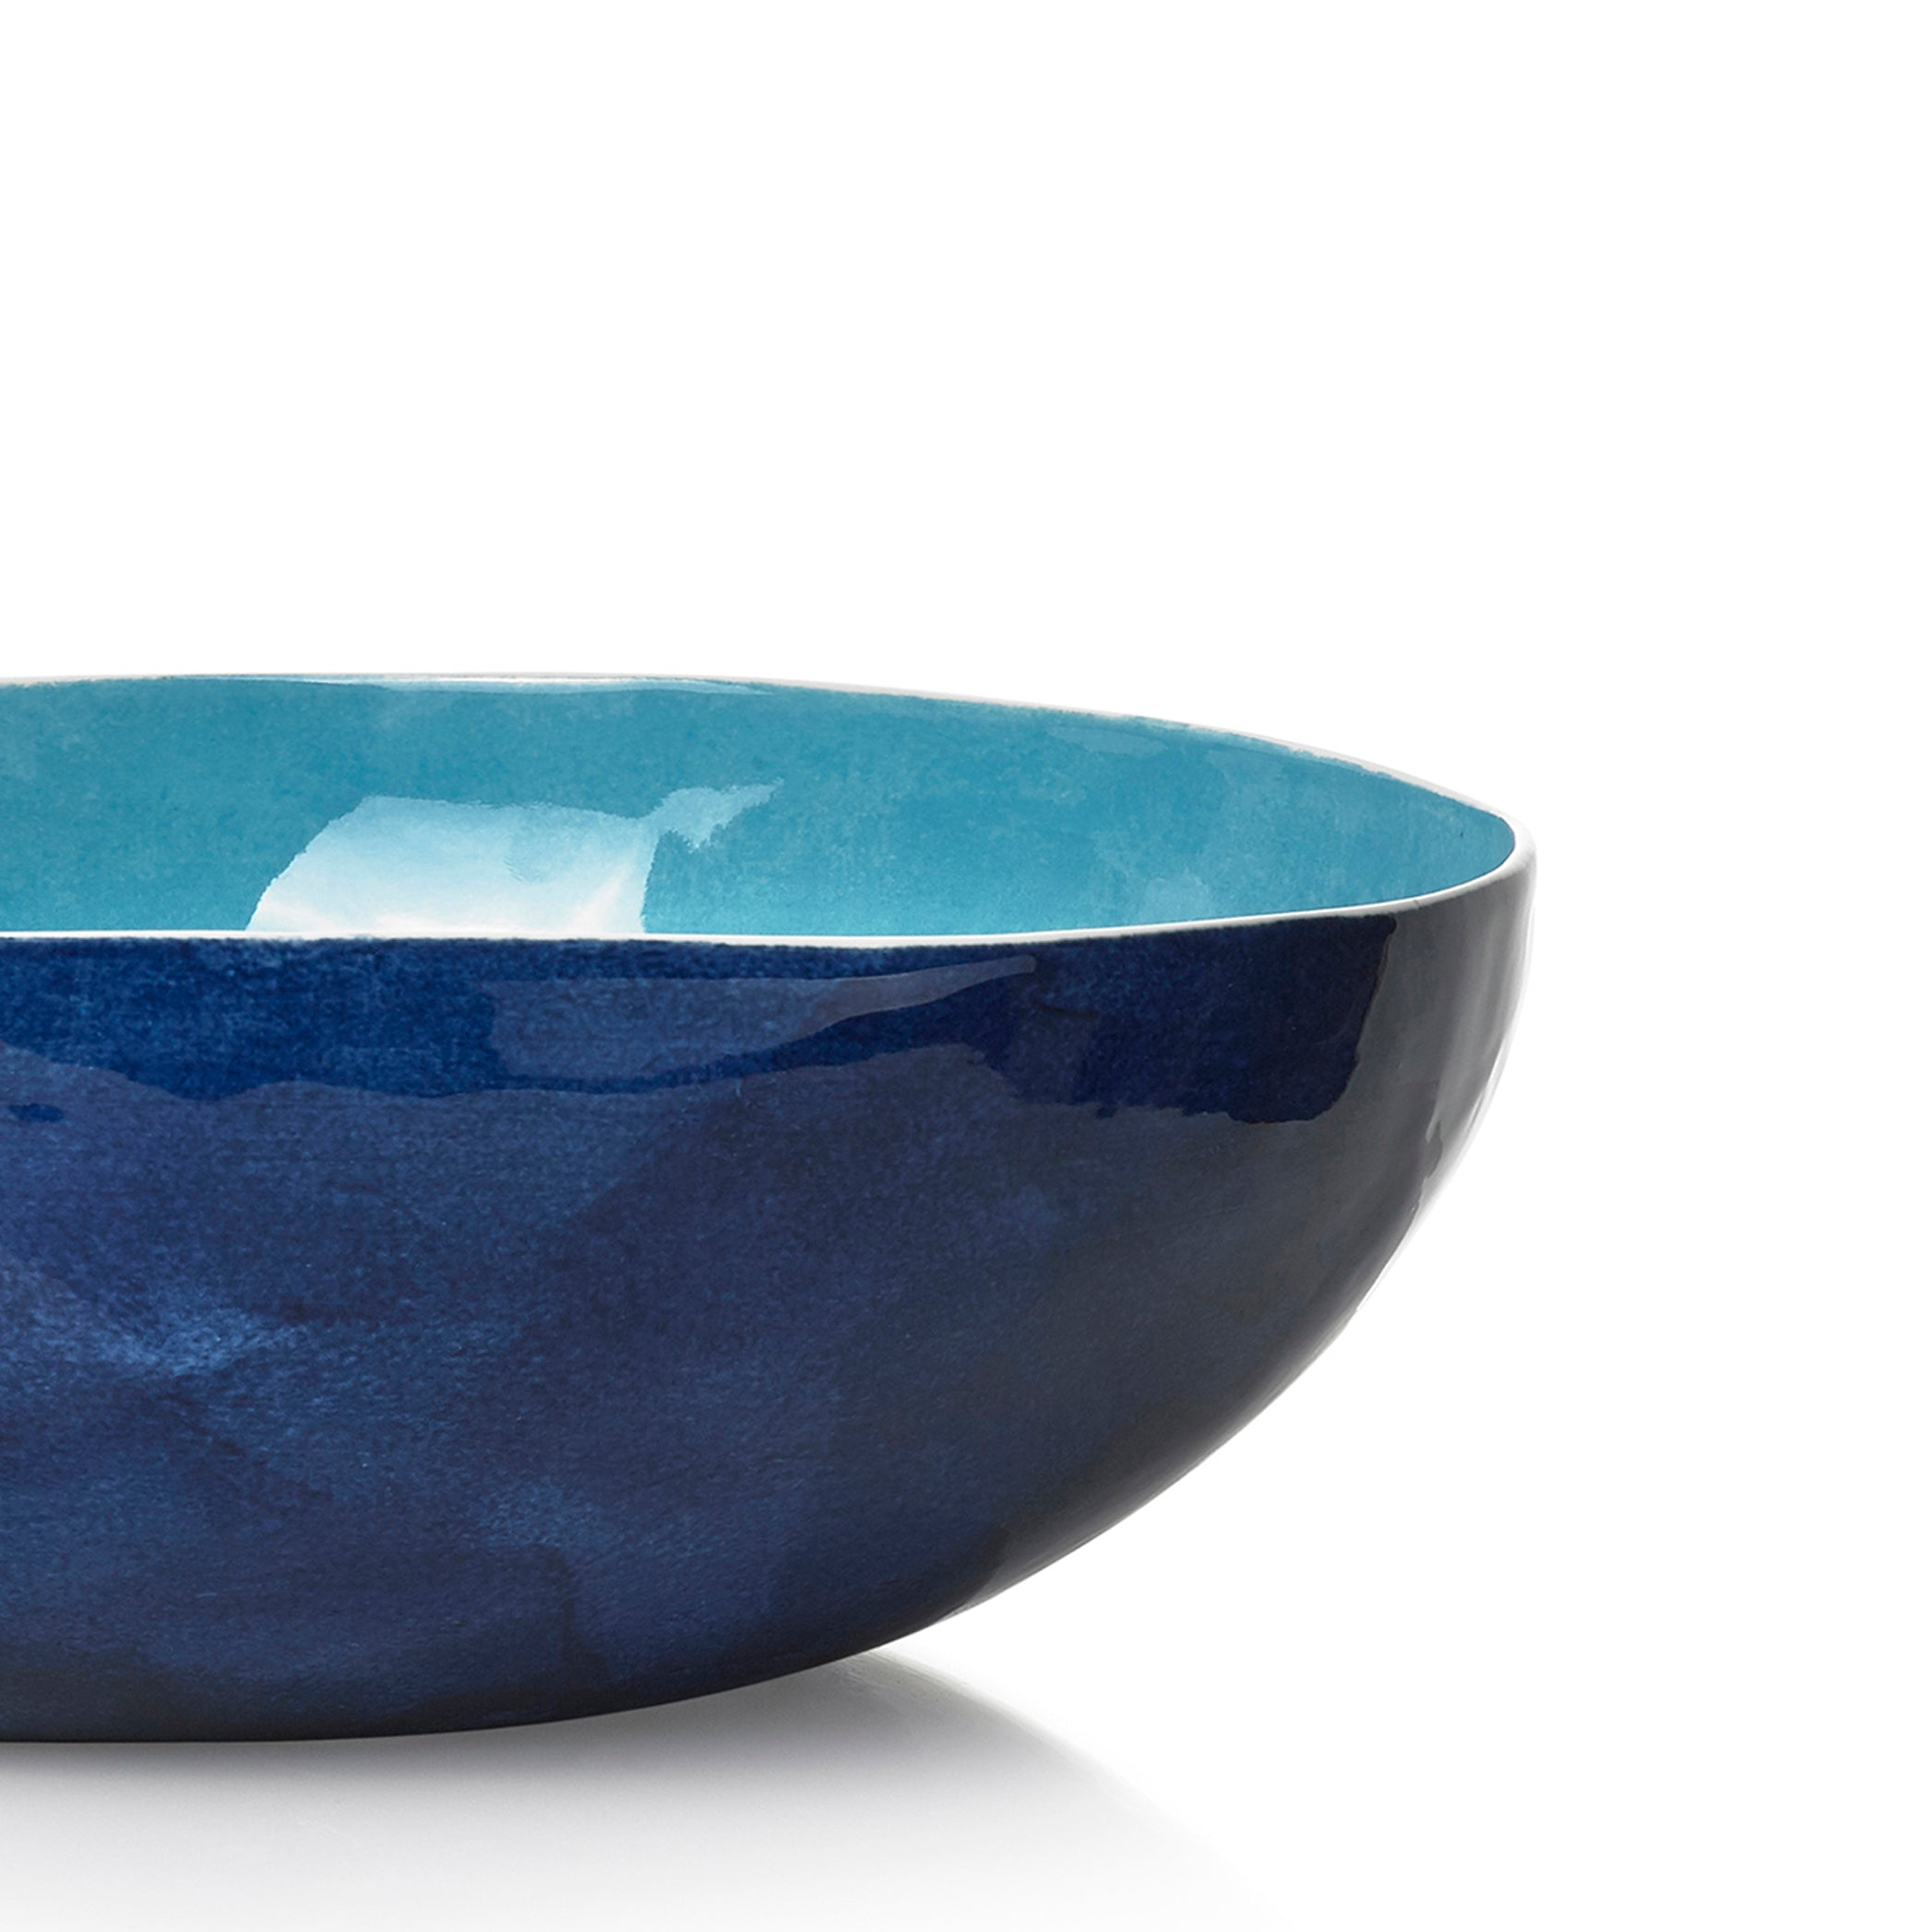 S&B Handmade 30cm Porcelain Medium Salad Bowl in Two Tone Blue